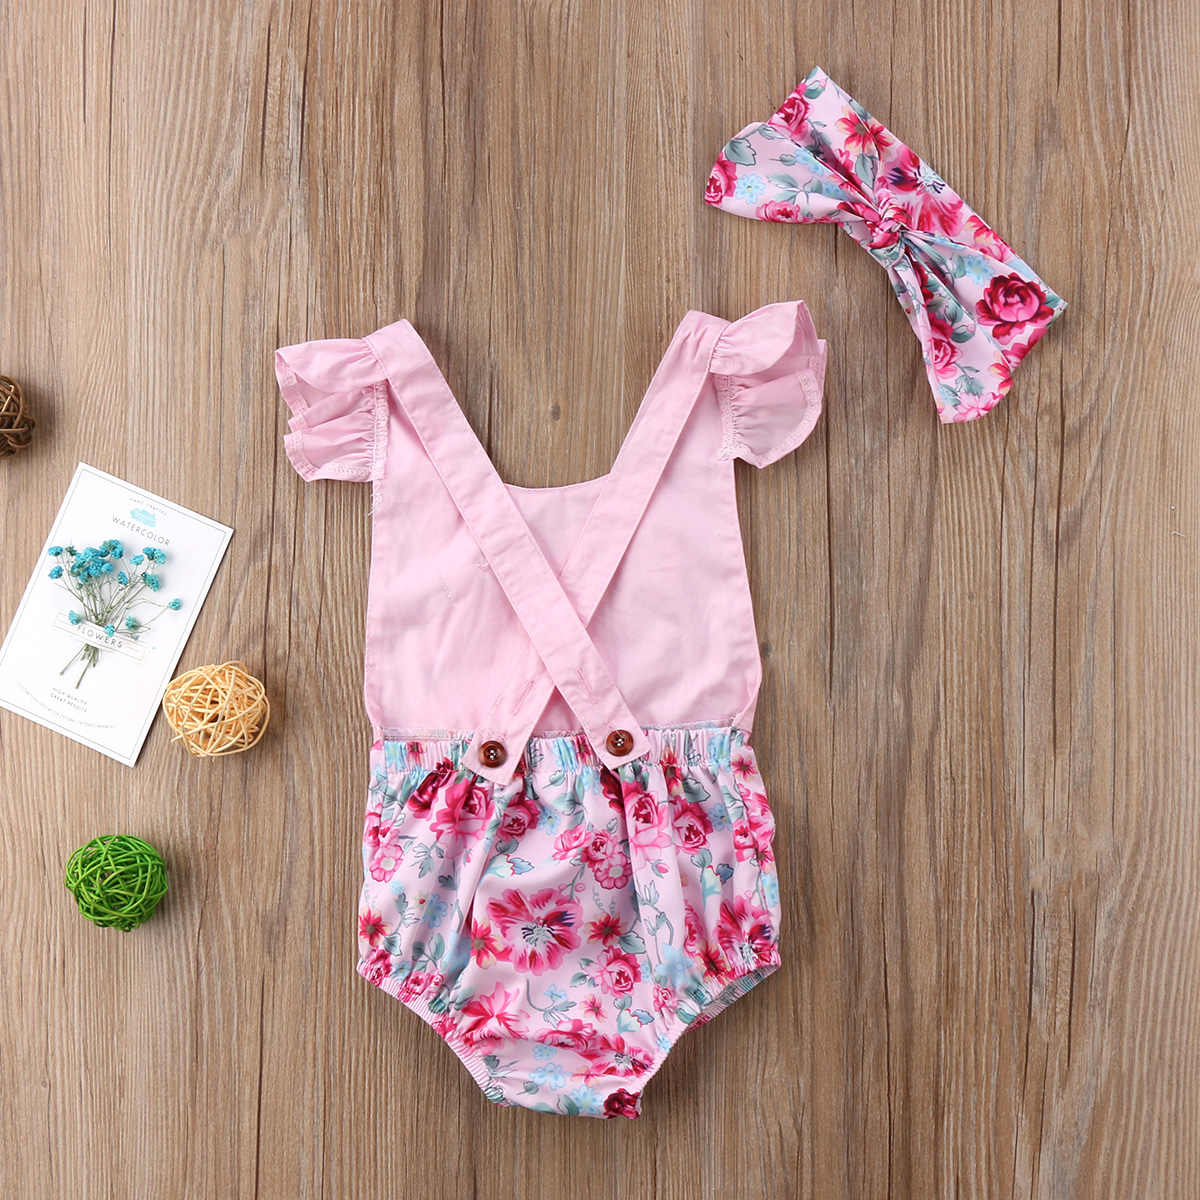 87bfa4c0d ... 2018 New Easter Floral Romper Newborn Baby Girl Bunny Romper Flying  Sleeve Jumpsuit Outfits Summer Flower